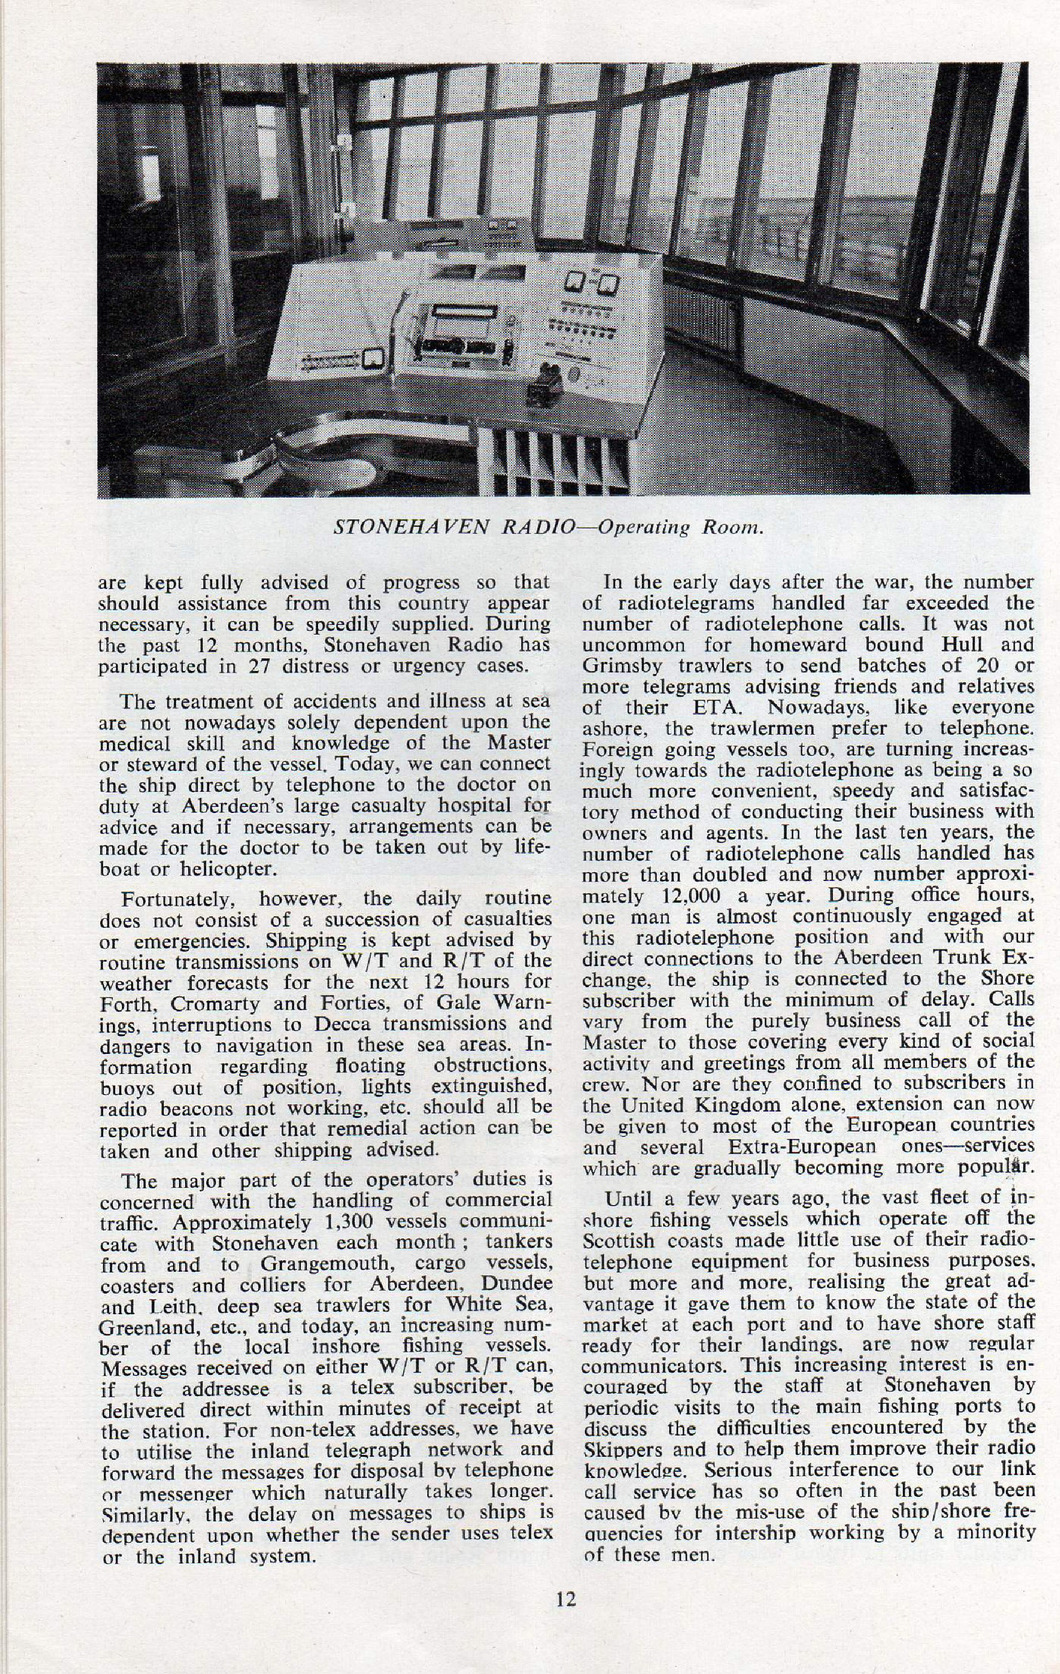 second page of the article with picture of the radio console in the operating room